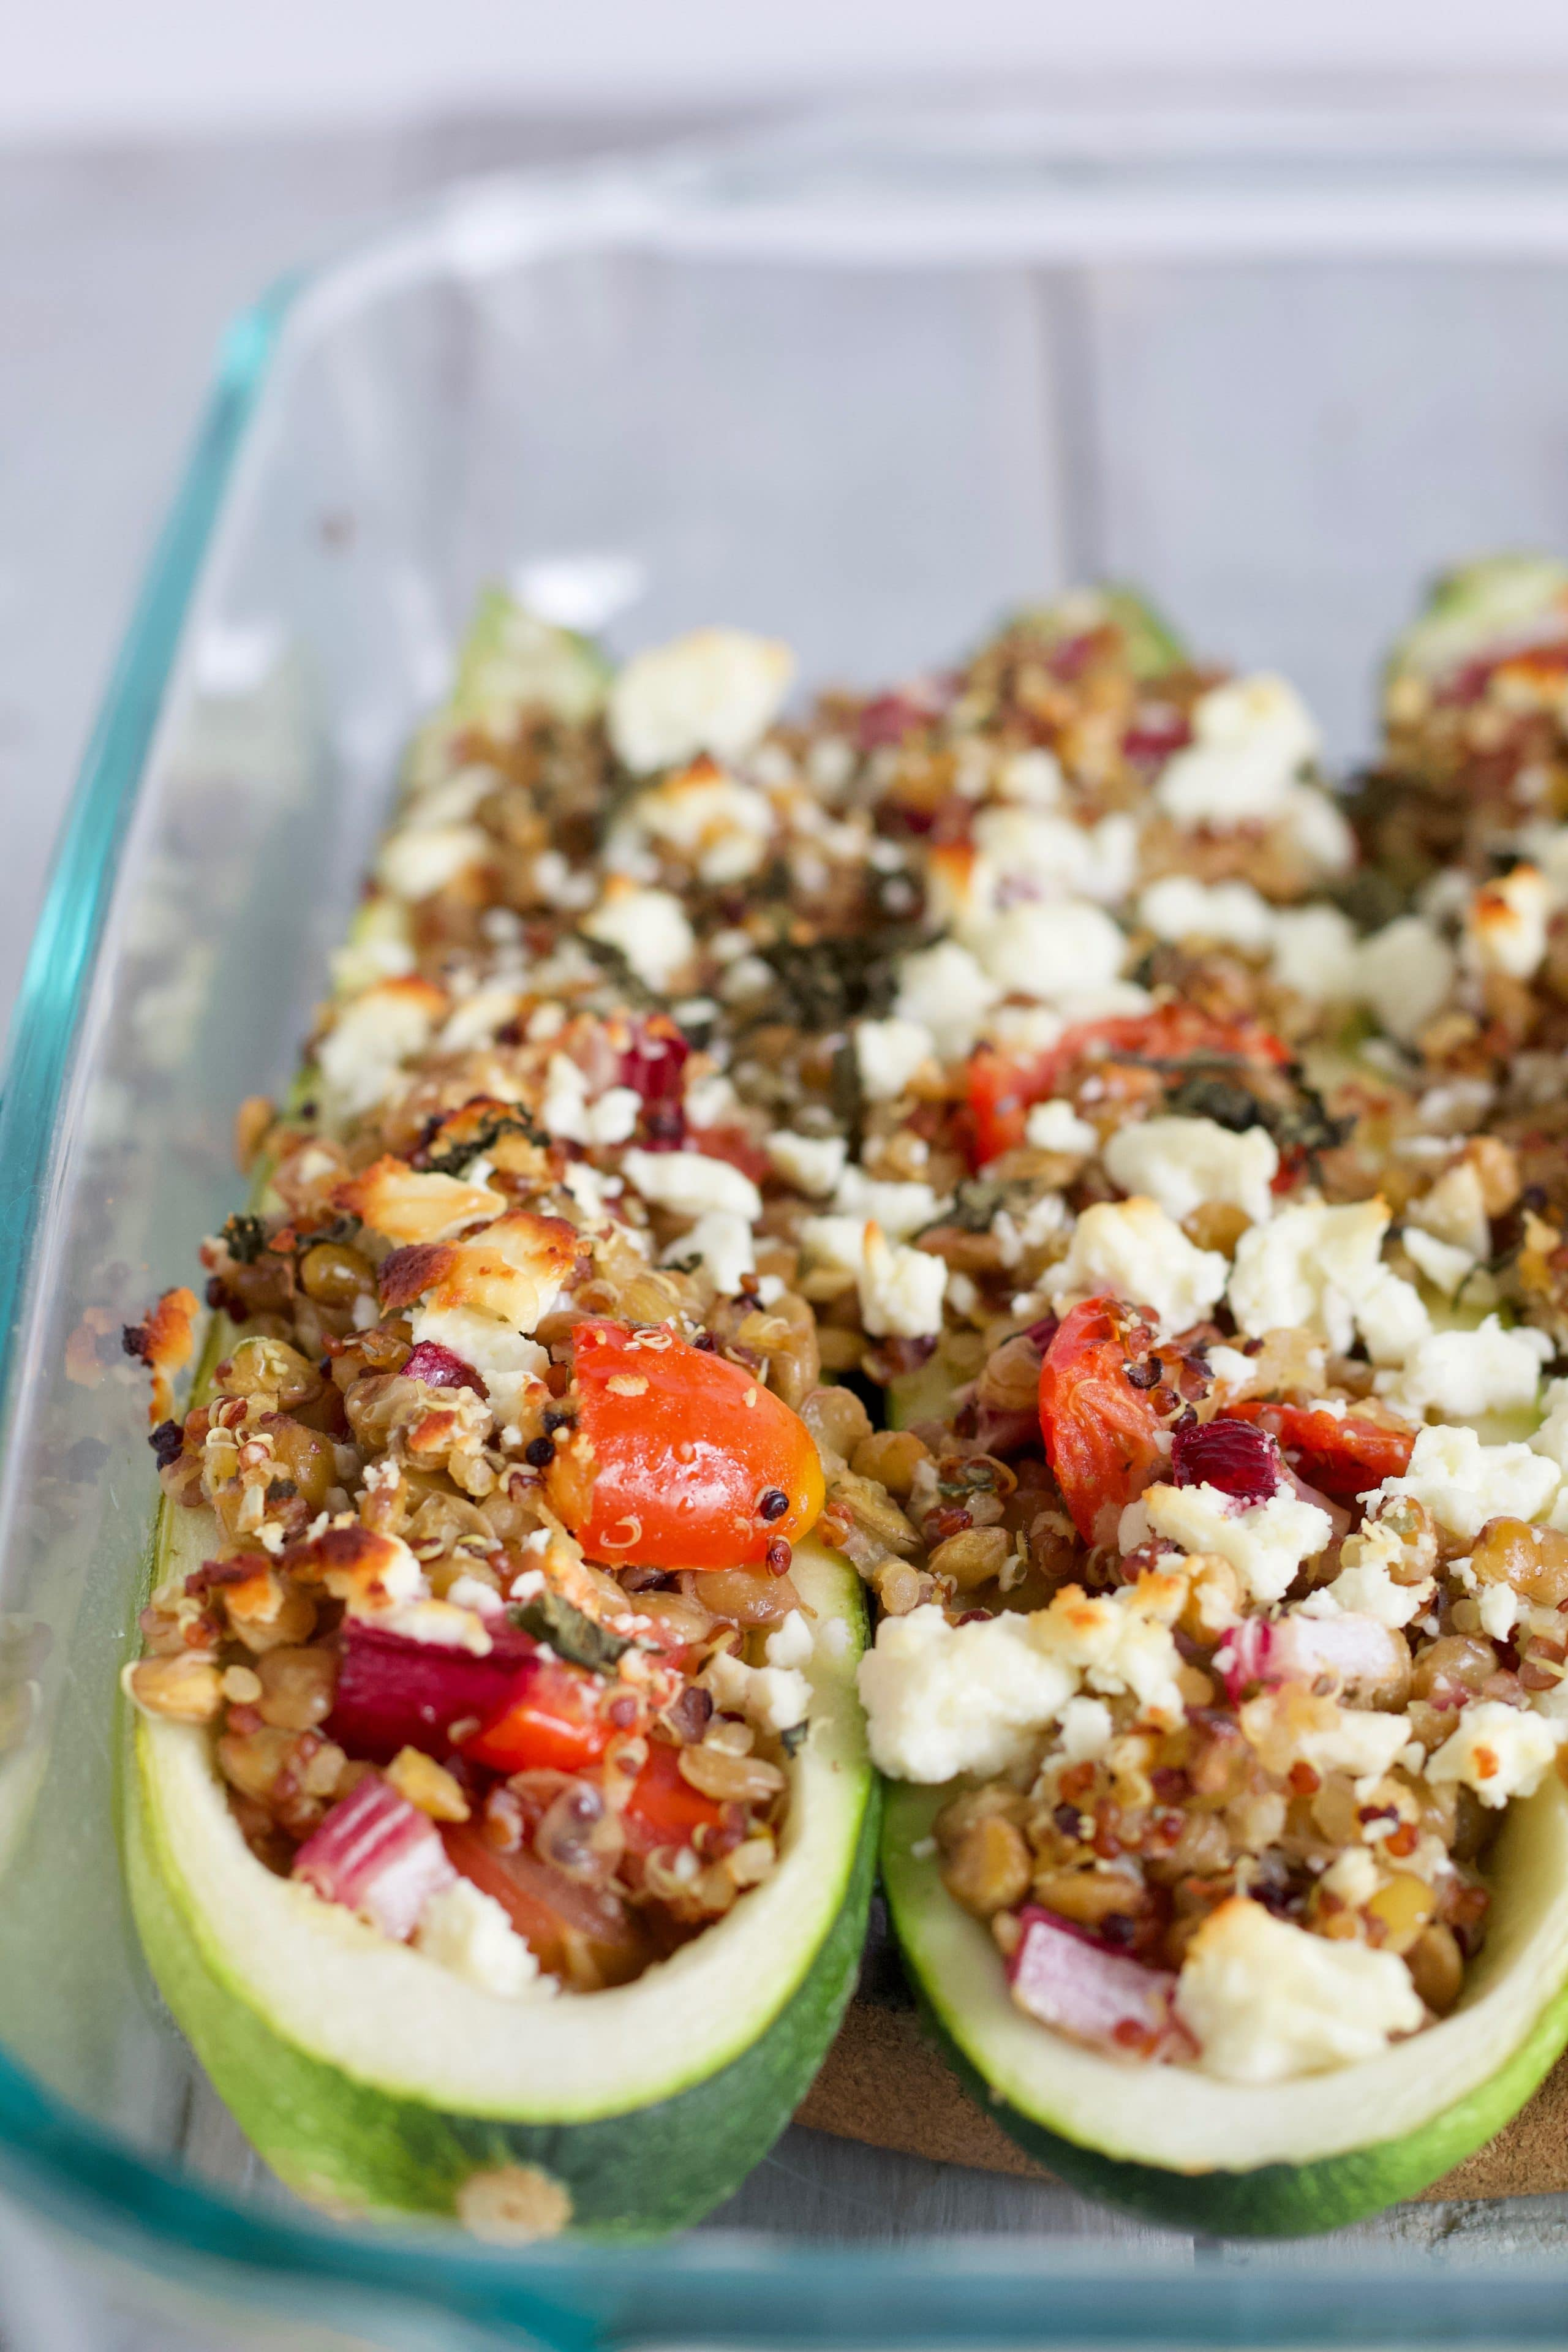 Lentil Stuffed Zucchini is a delicious vegetarian meal using summer produce.